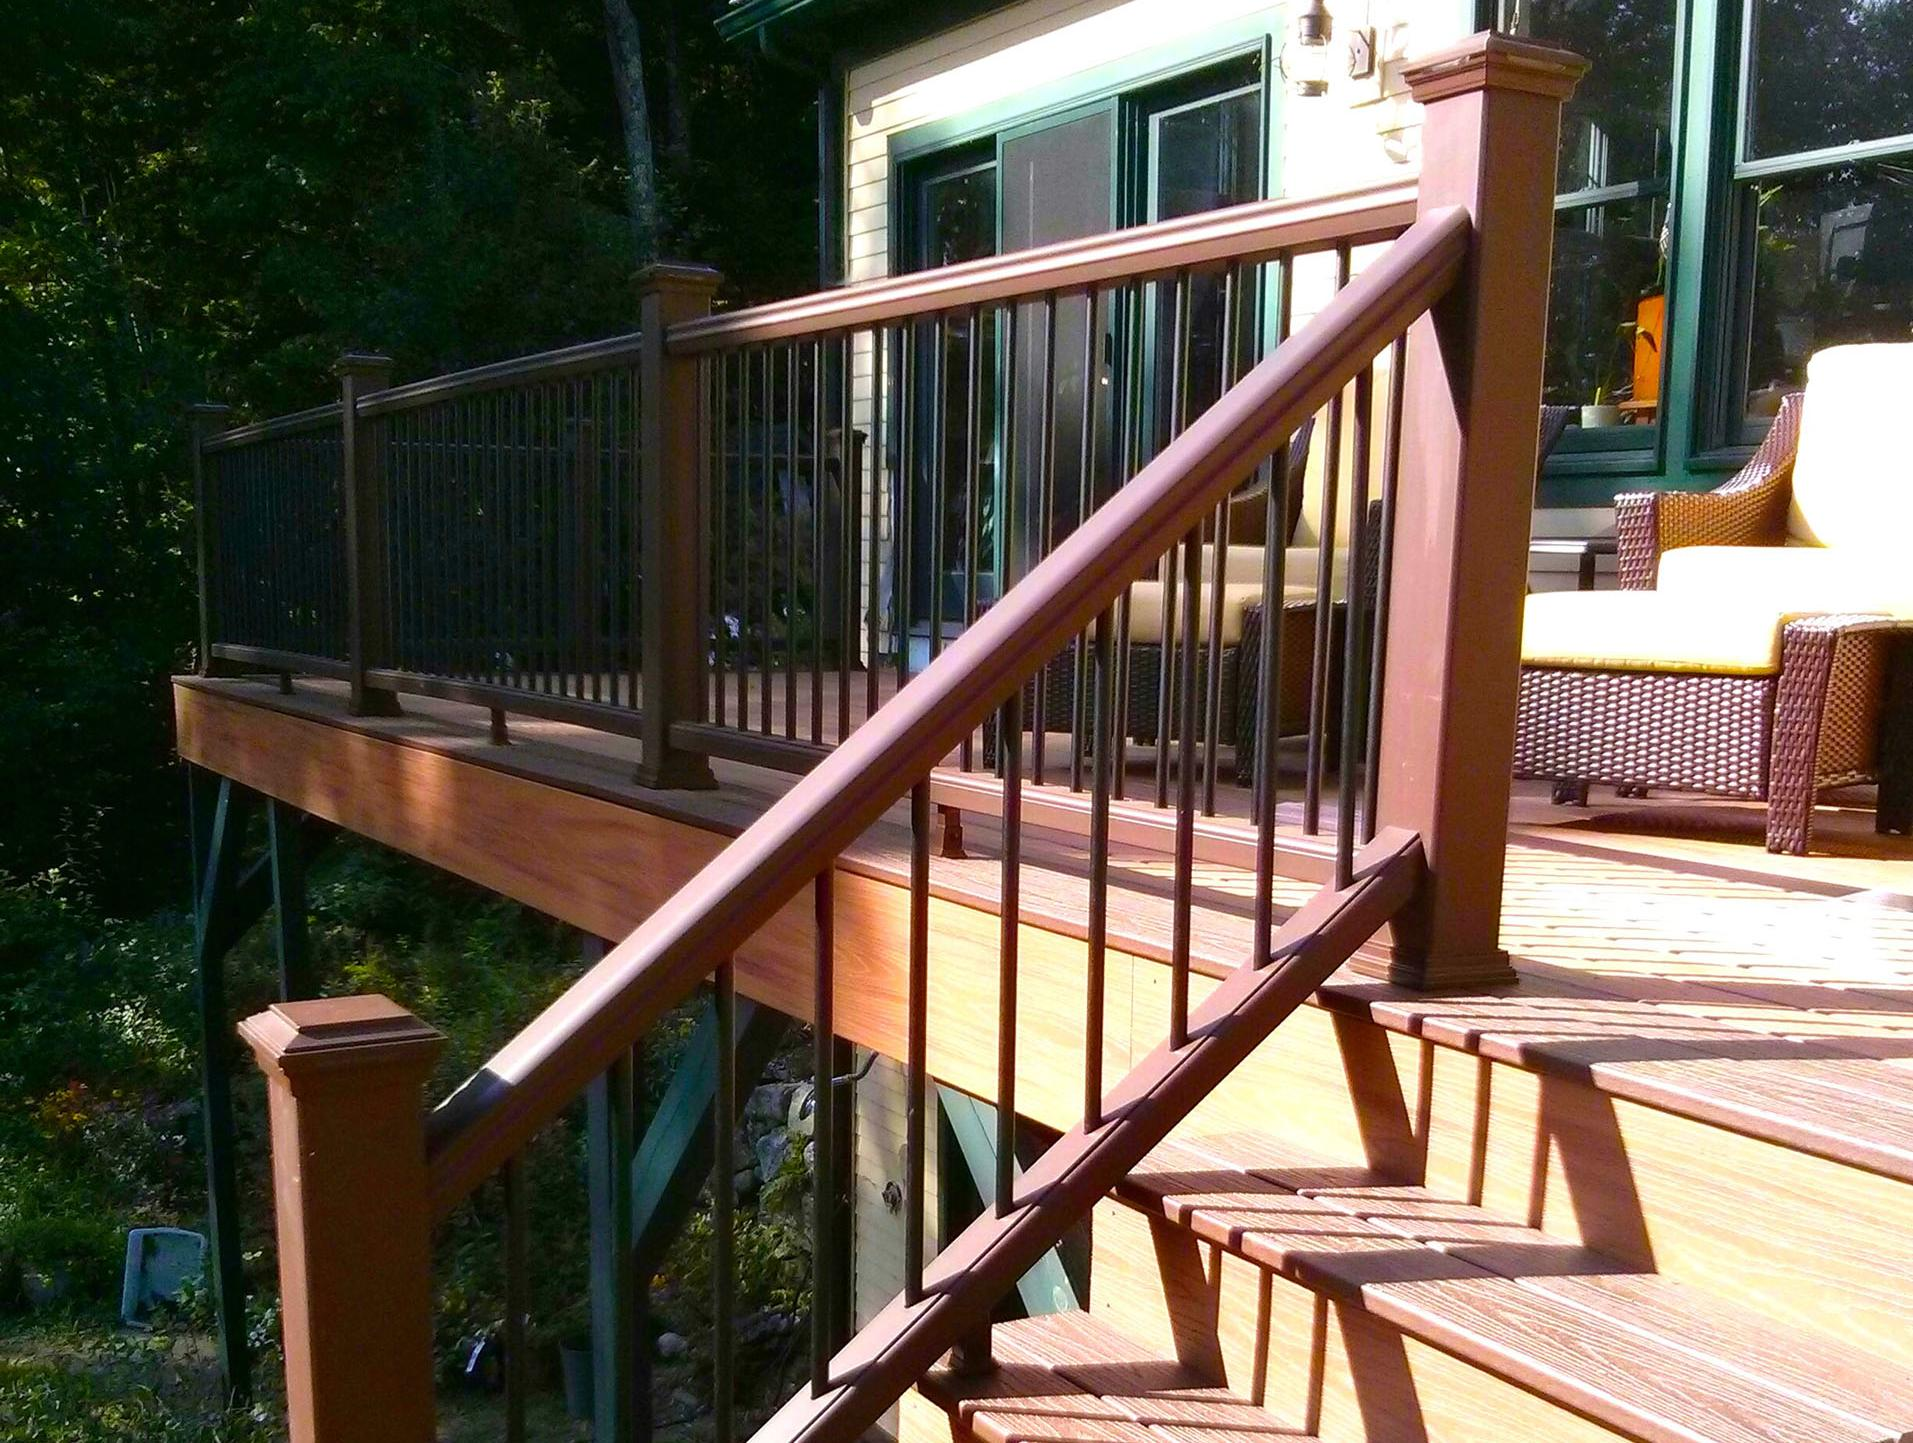 How to build a deck stair railing | The Spokesman-Review